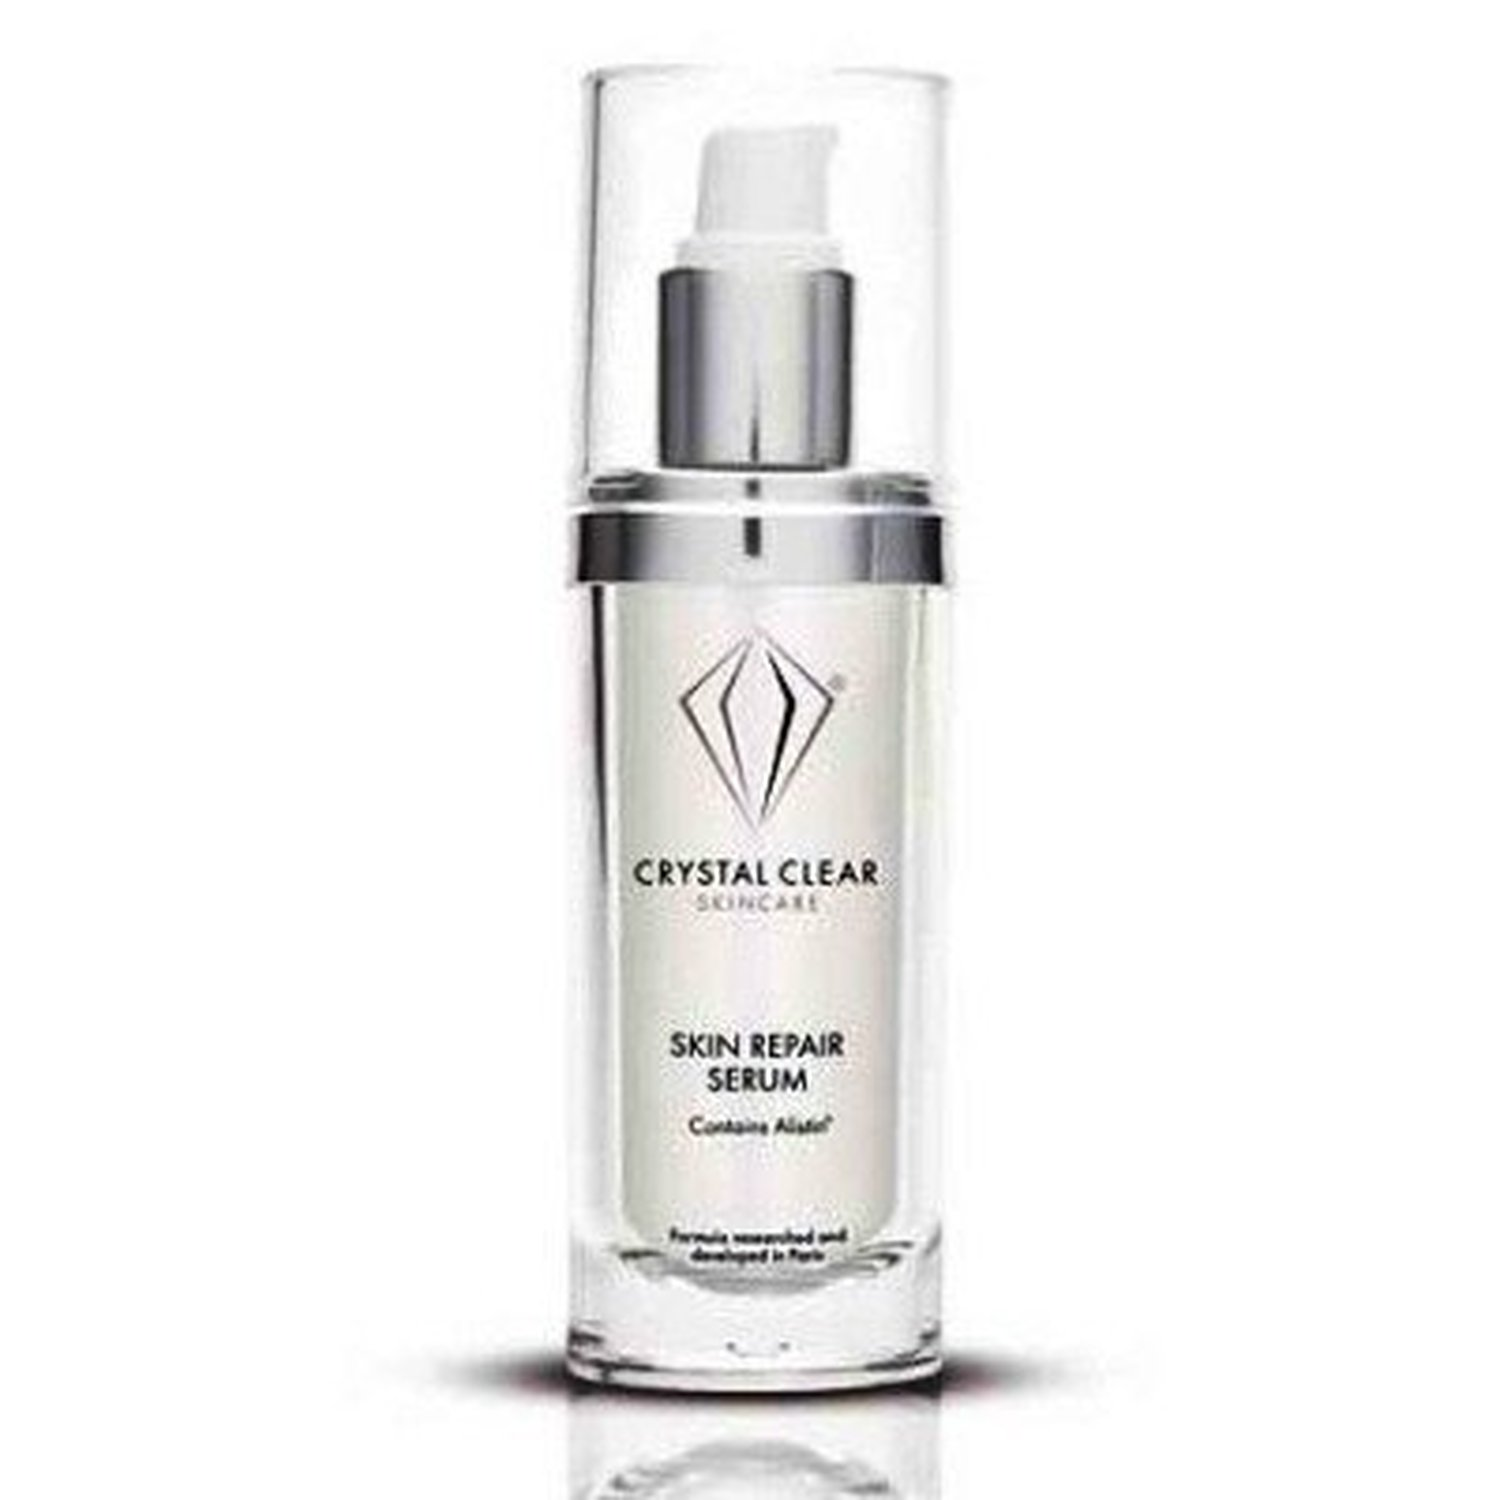 crystal clear skincare skin repair serum 120ml falten zu reduzieren straffe haut ebay. Black Bedroom Furniture Sets. Home Design Ideas